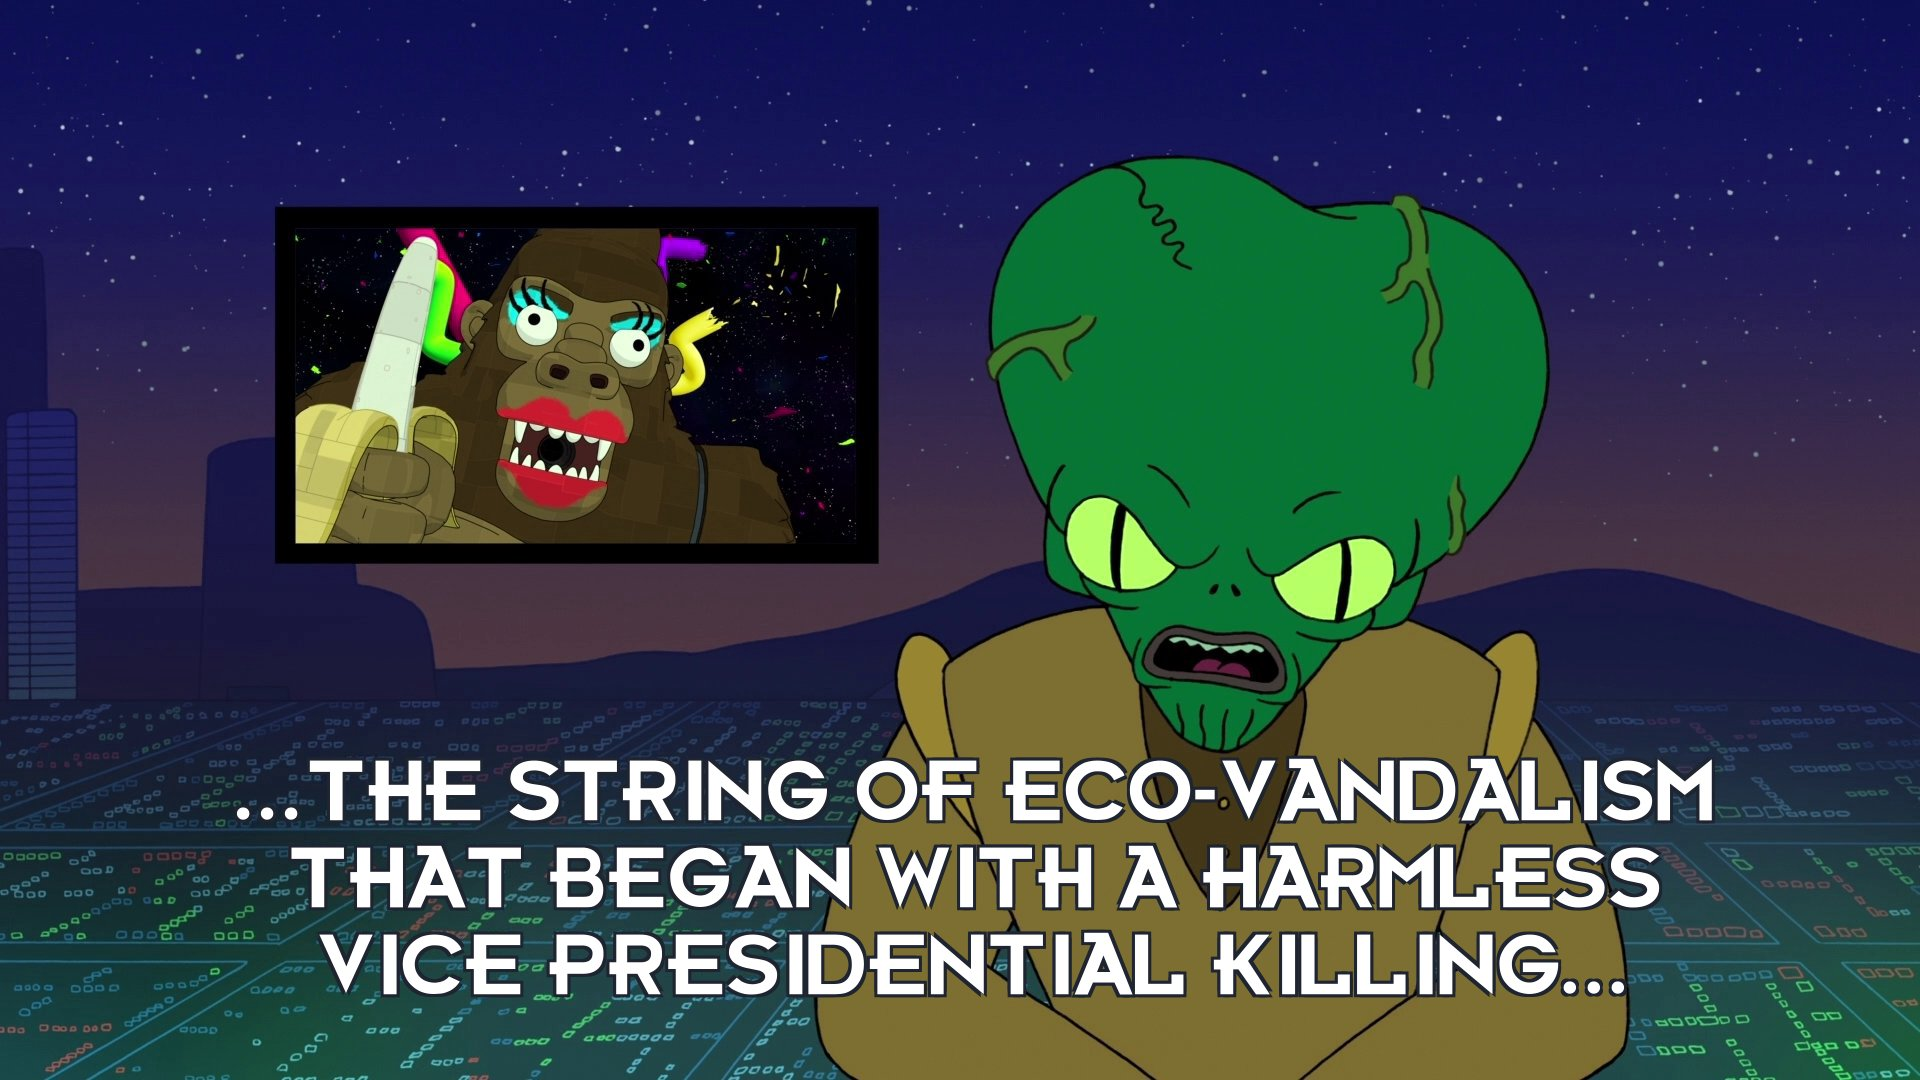 Morbo: ...The string of eco-vandalism that began with a harmless vice presidential killing...